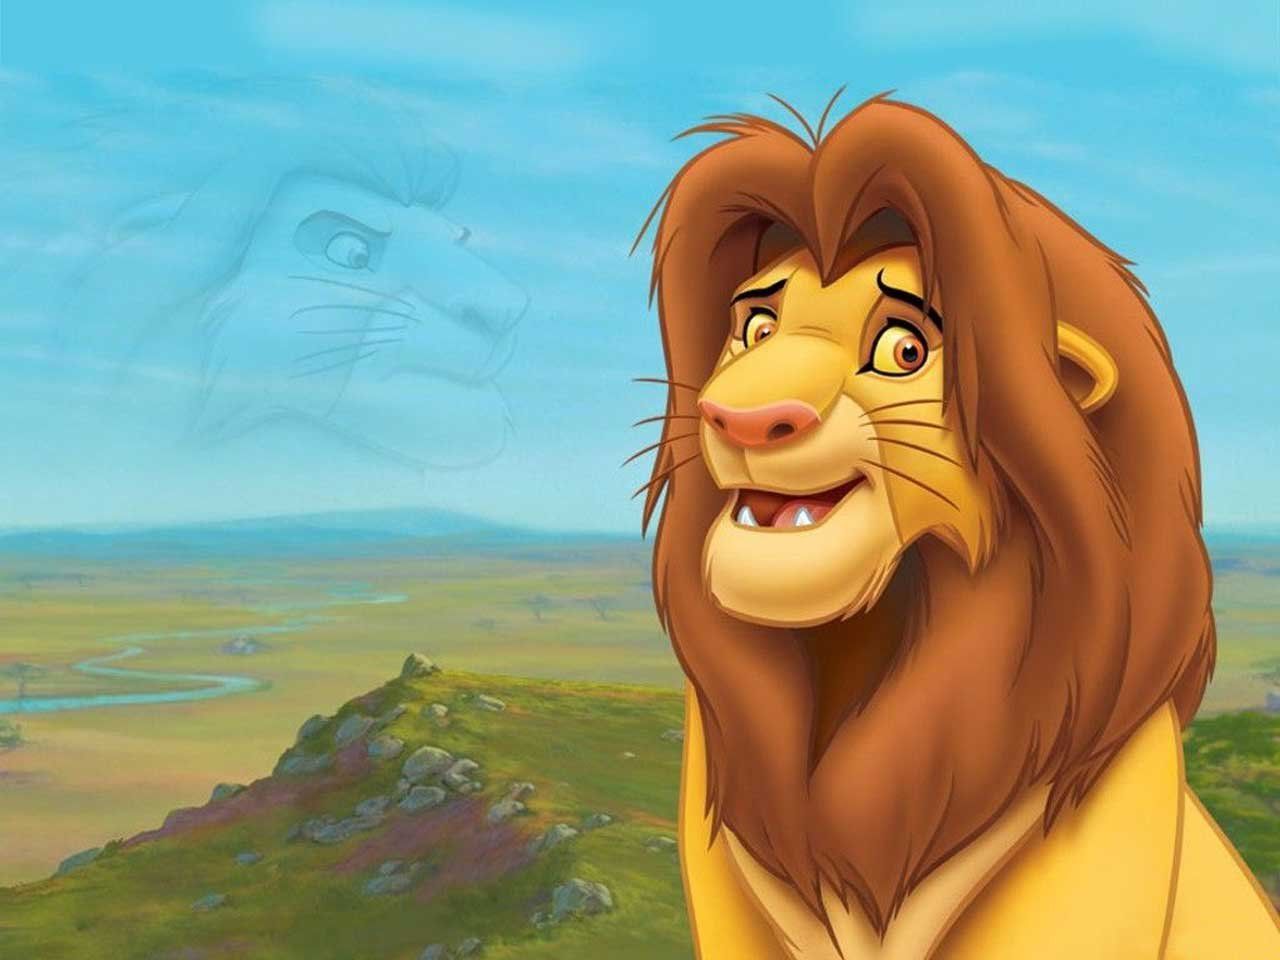 Icing Image The Lion King